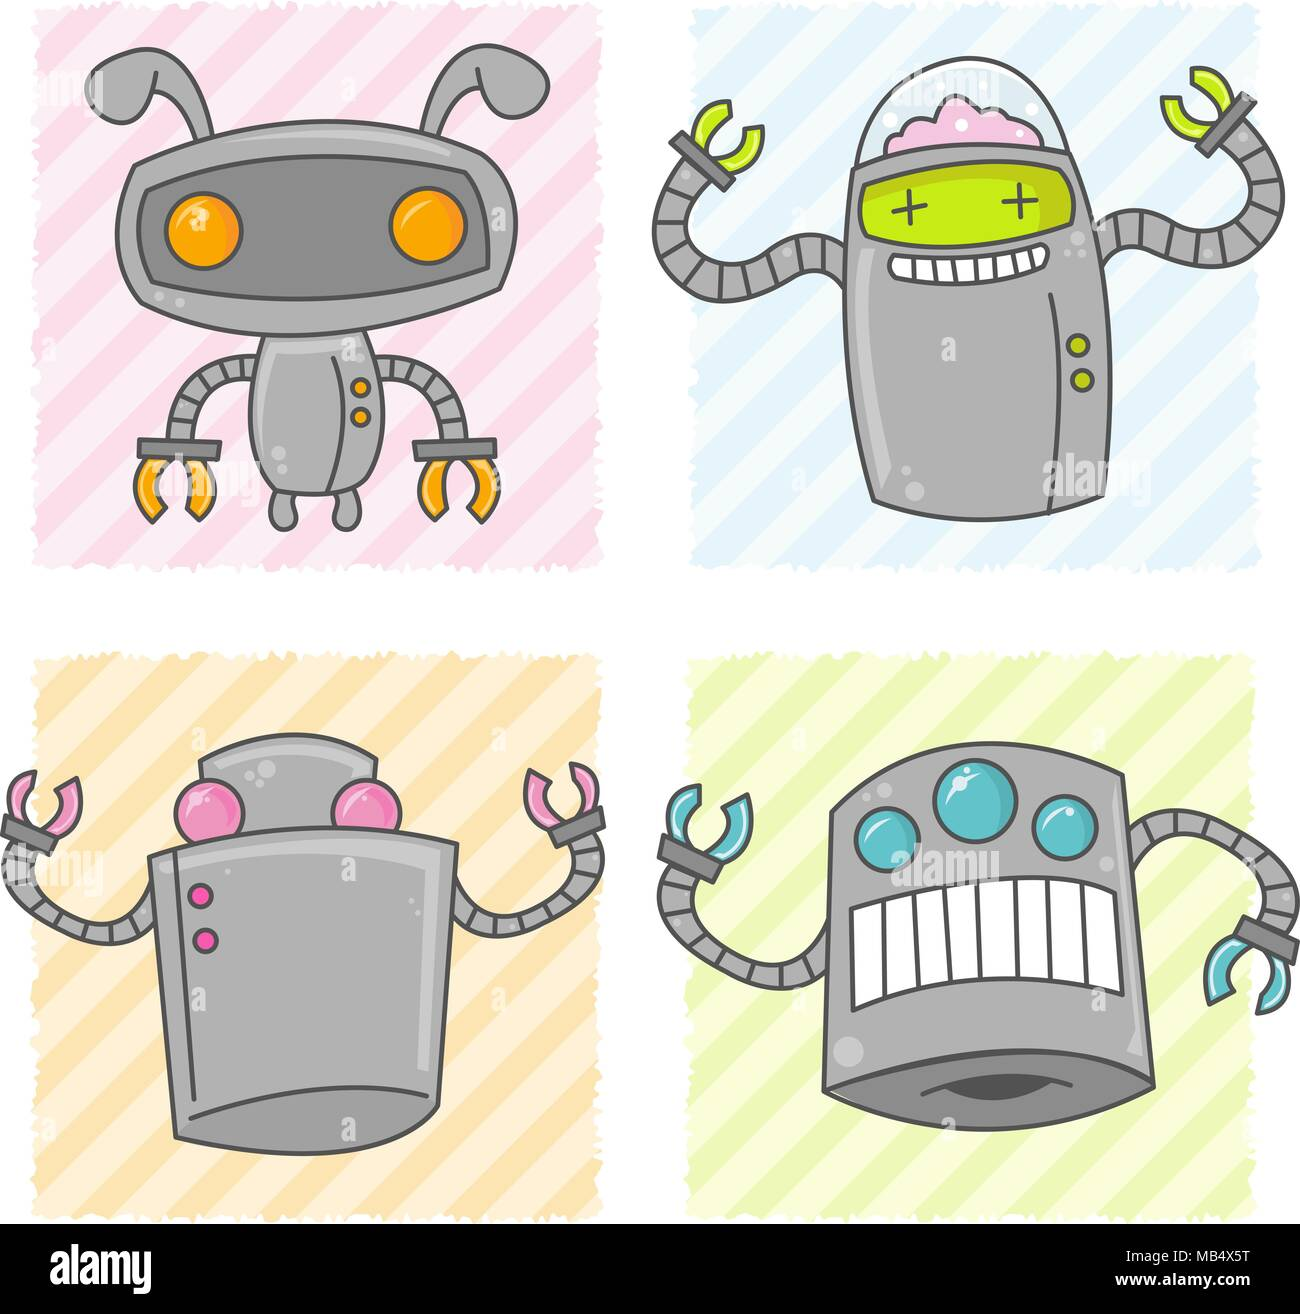 Some happy cute vector robots with claw arms. - Stock Vector